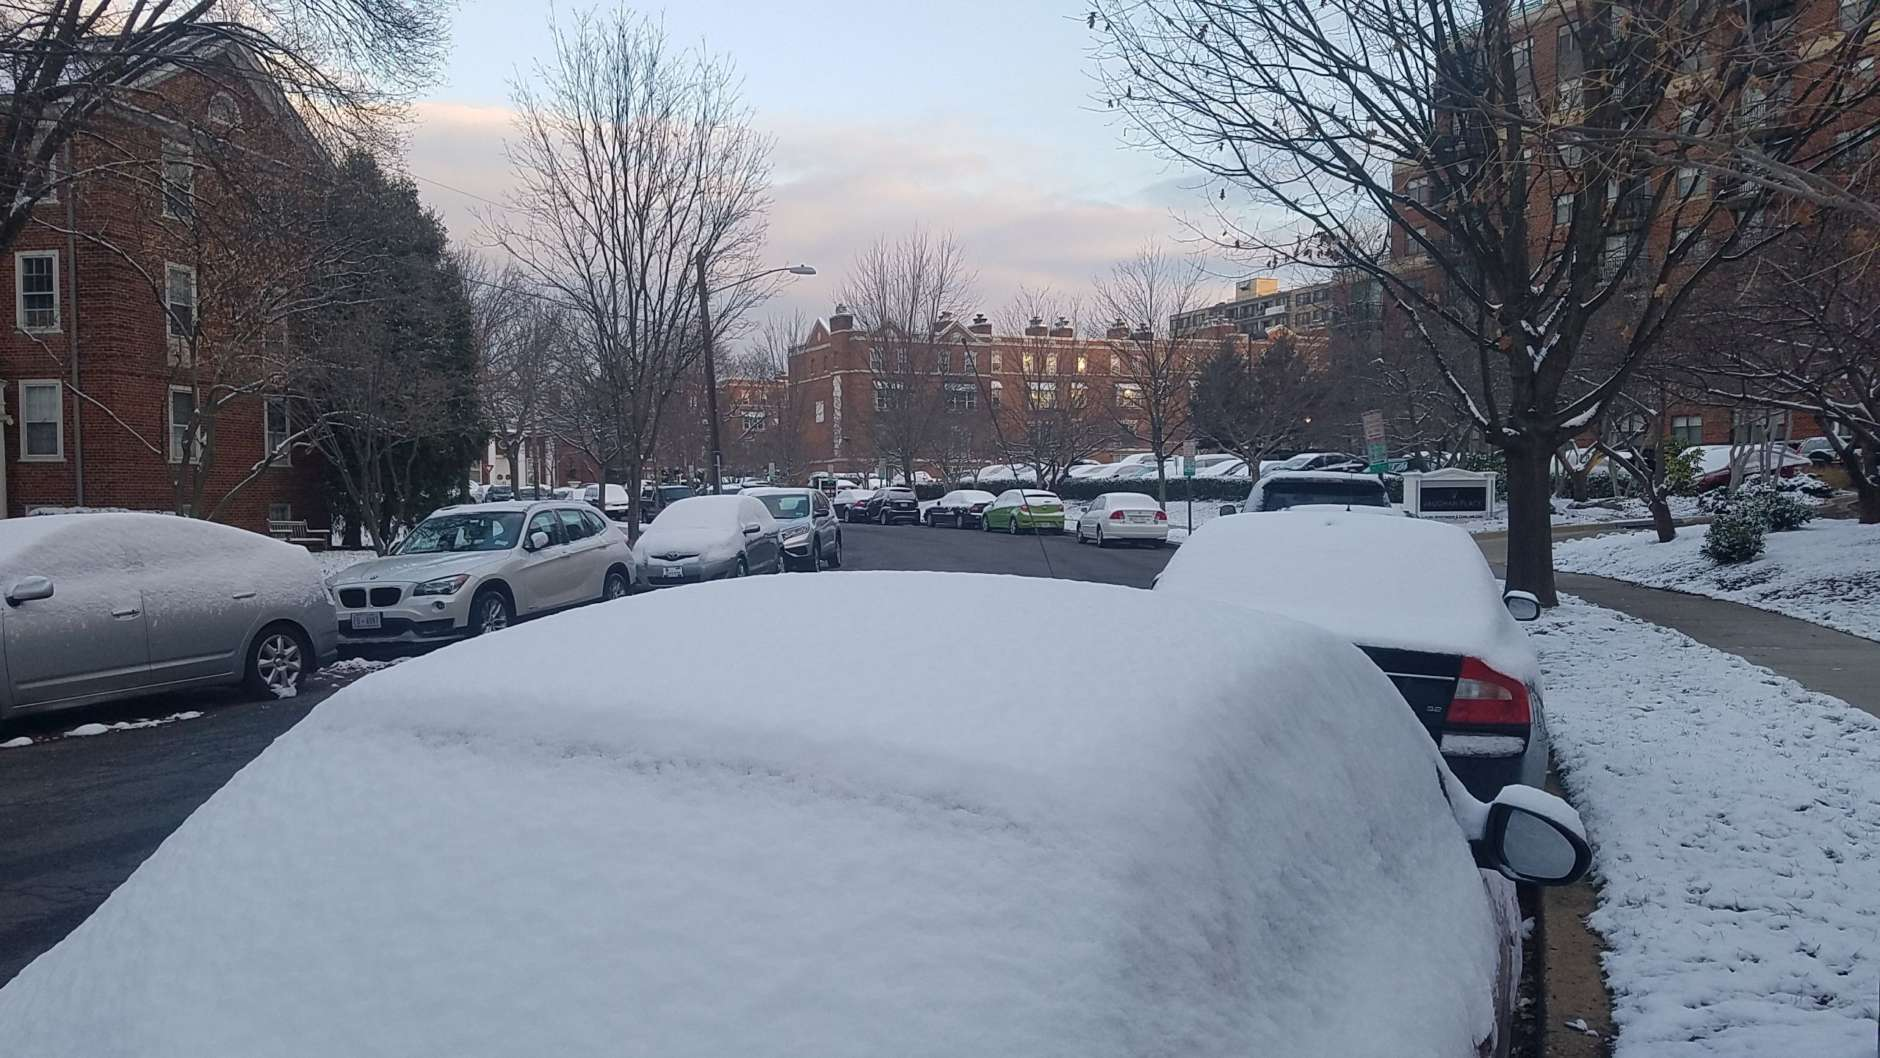 Vehicles sit with a covering of snow in northwest D.C. Sunday morning. (WTOP/William Vitka)